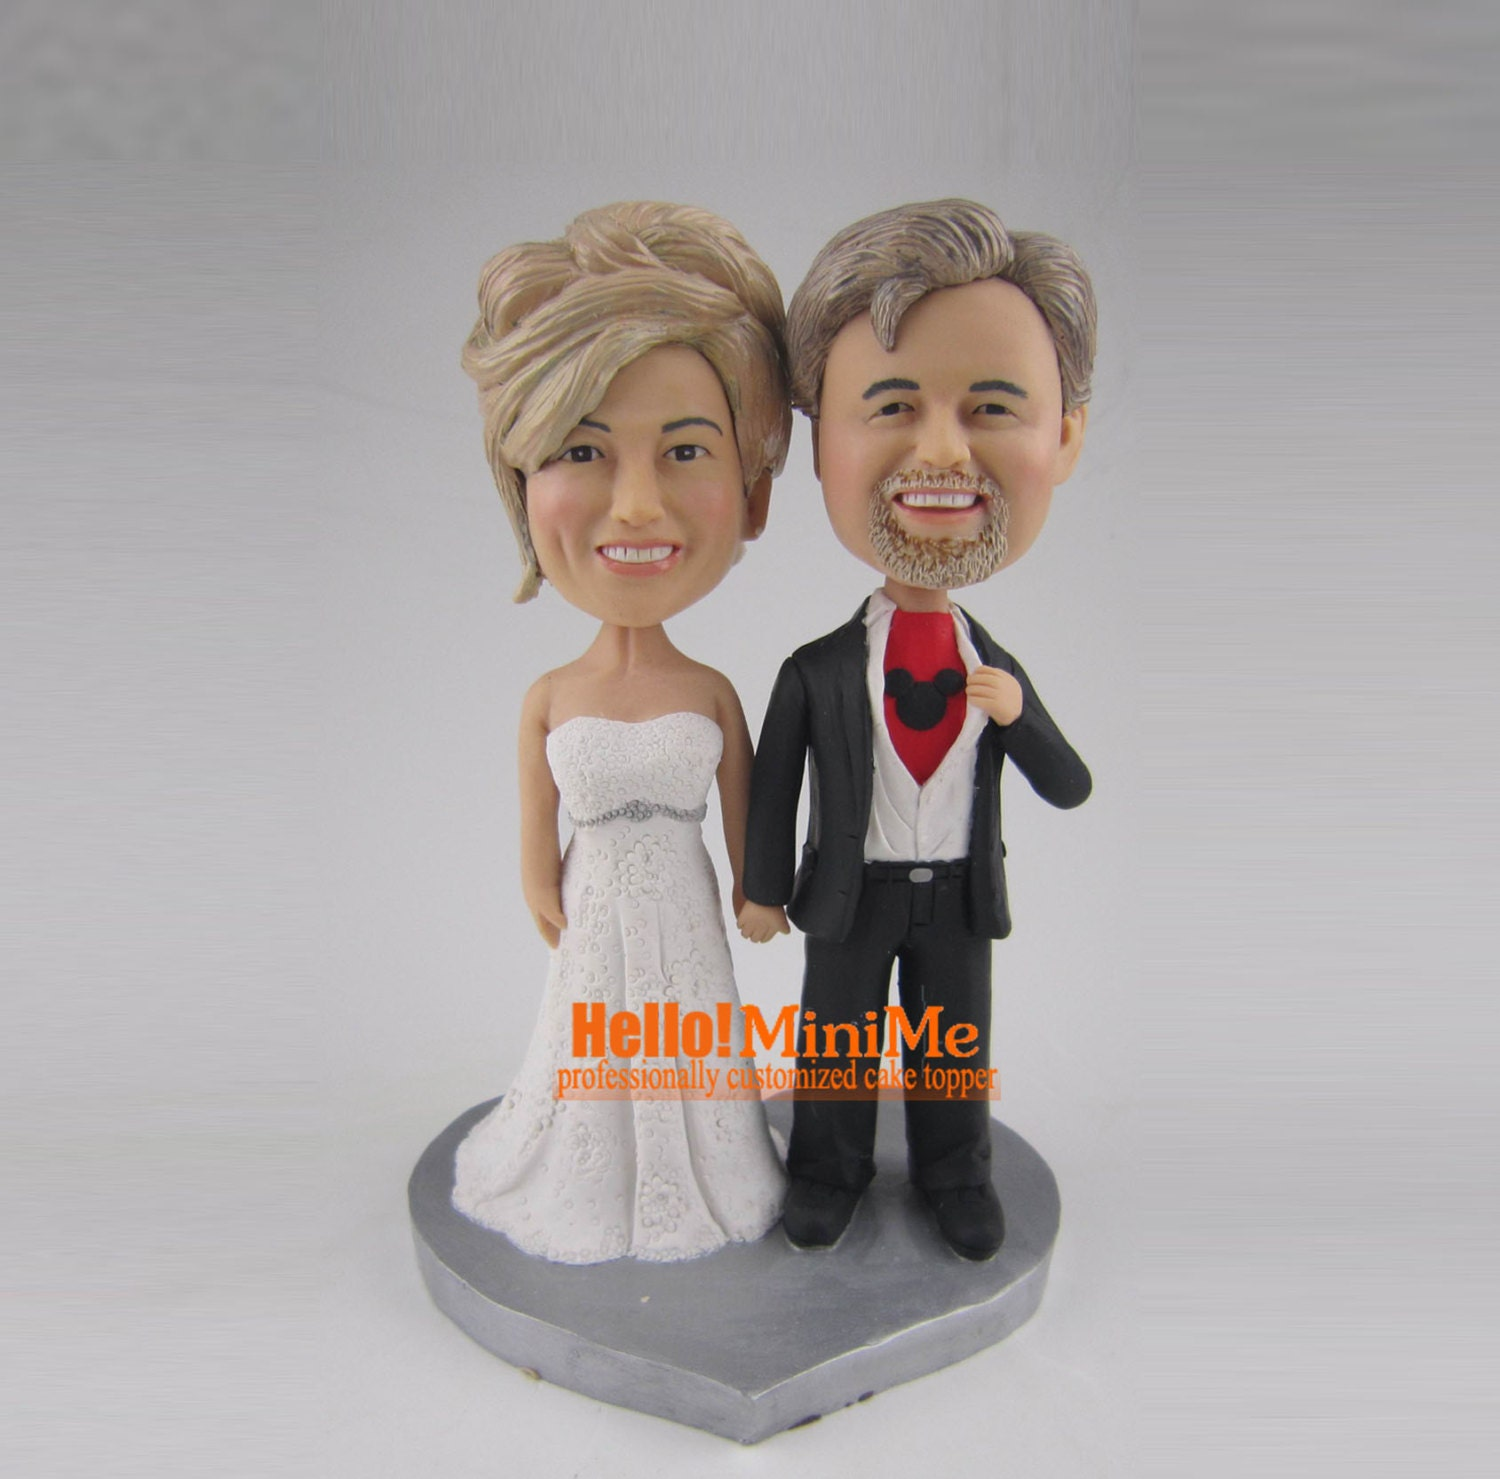 personalized bobblehead wedding cake toppers wedding topper bobblehead custom cake topper bobble 6475